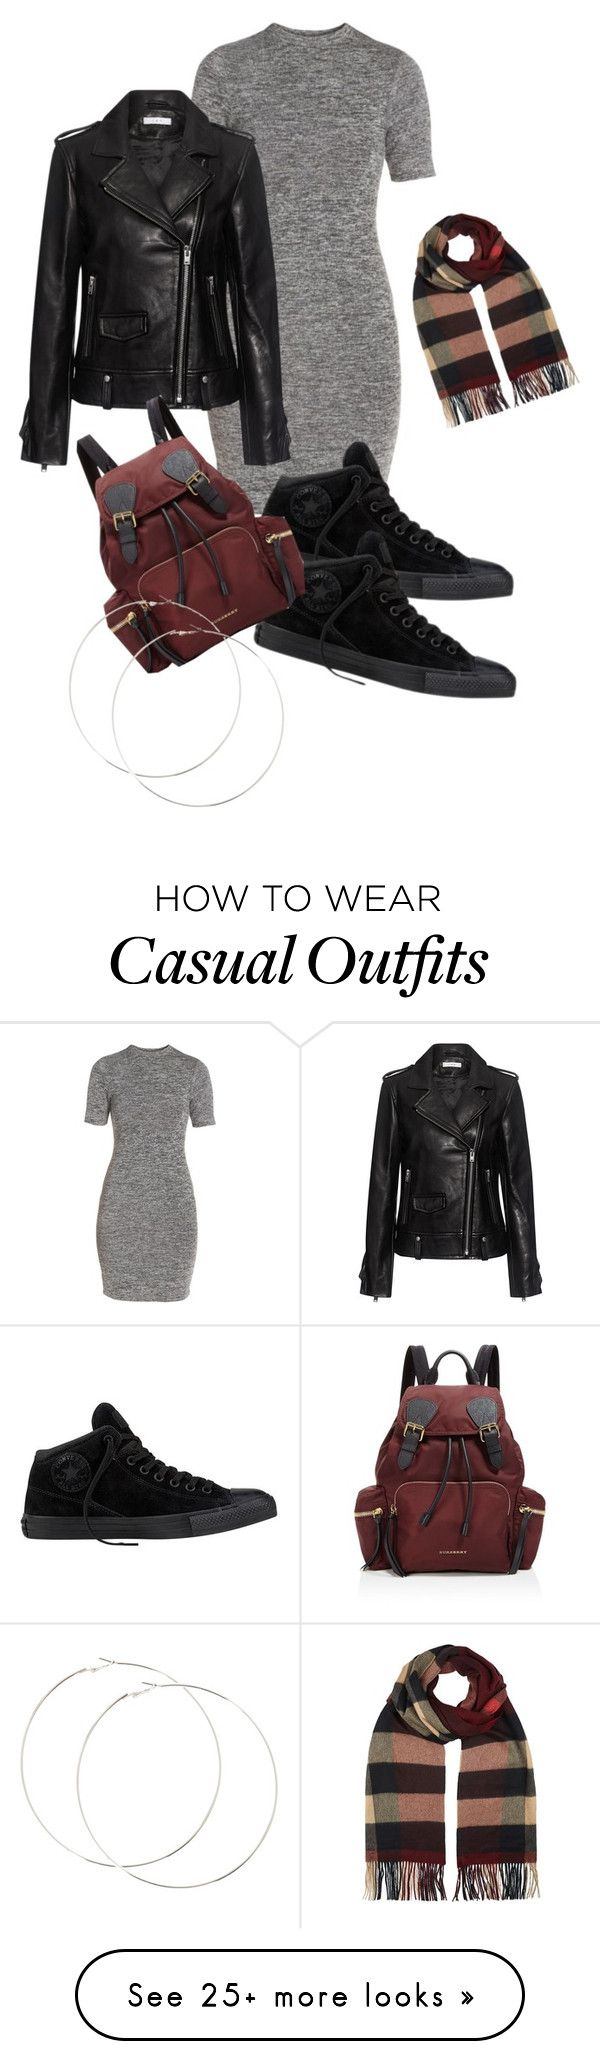 """""""Dress casual"""" by shaheraspearman9 on Polyvore featuring French Connection, IRO, Converse and Burberry"""